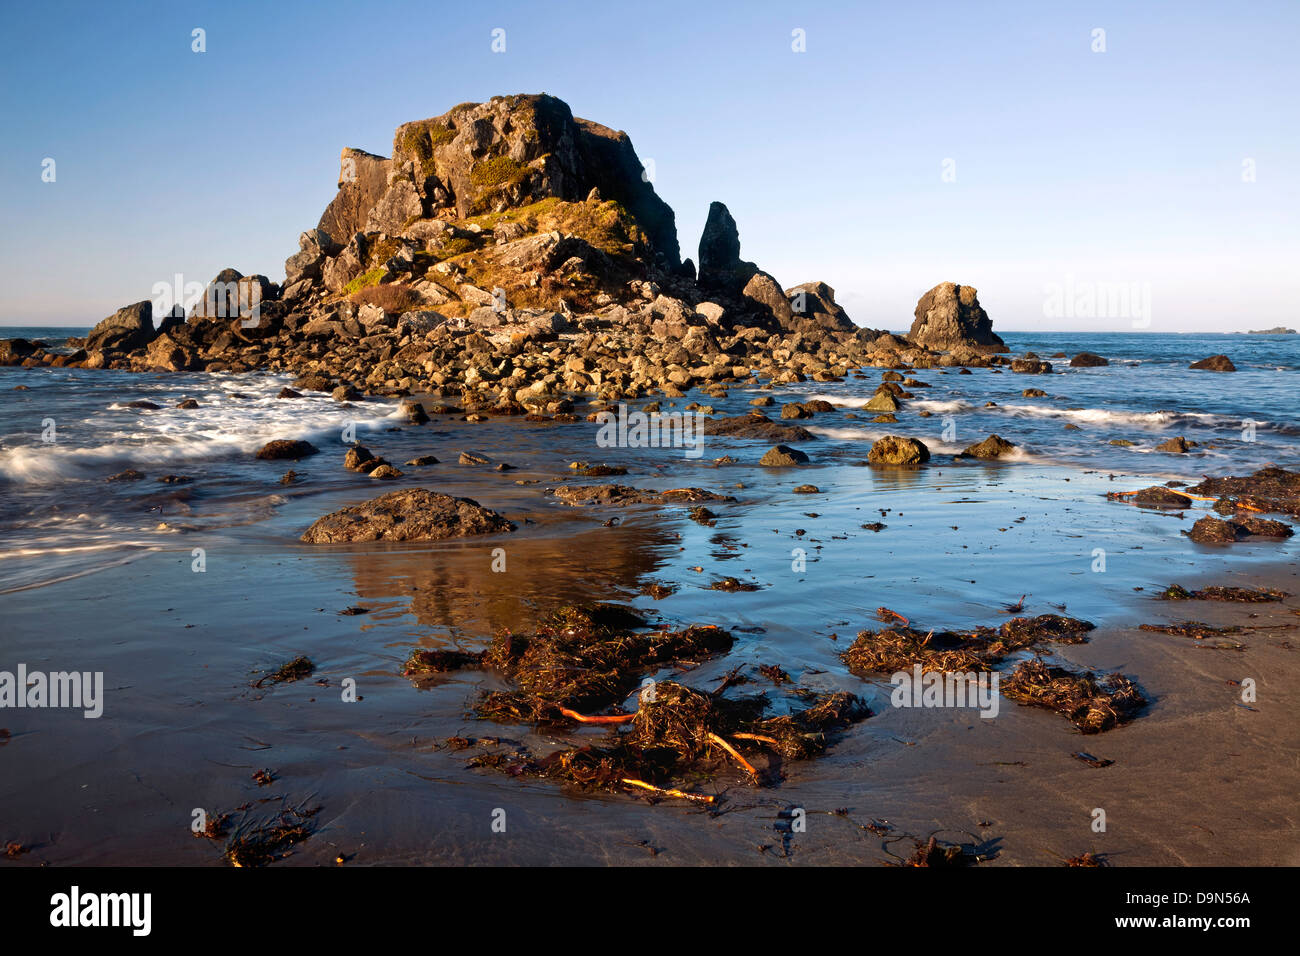 OR01088-00...OREGON - Seaweed and kelp on Rock Beach at the edge of the Pacific Ocean in Harris Beach State Recreation - Stock Image